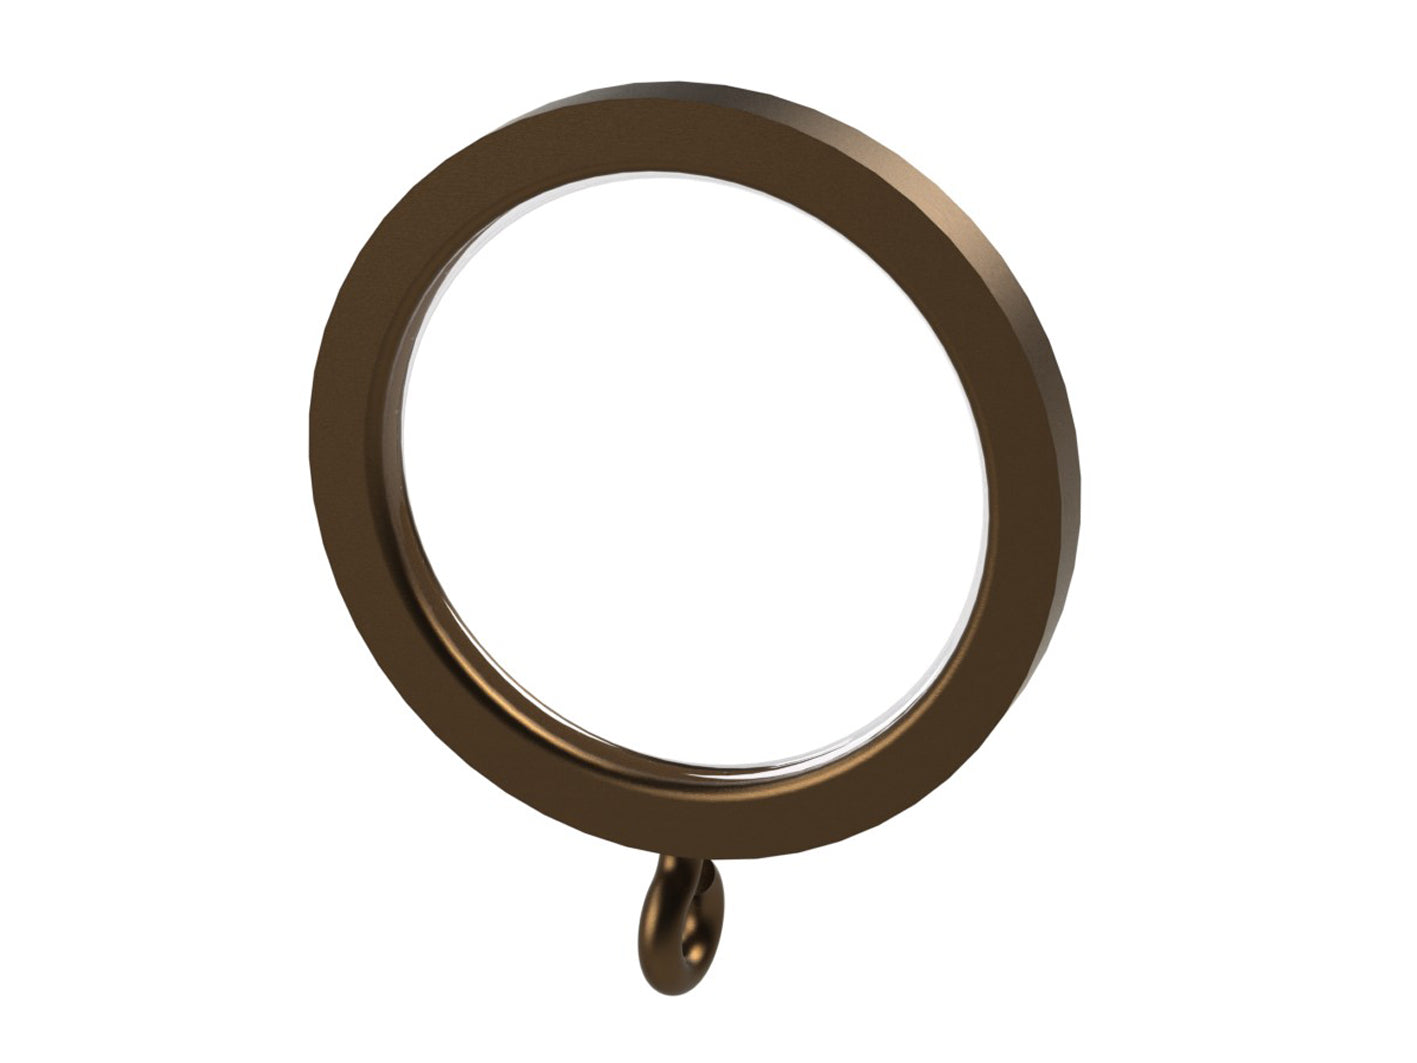 brushed bronze curtain rings for 30mm curtain pole by Walcot House